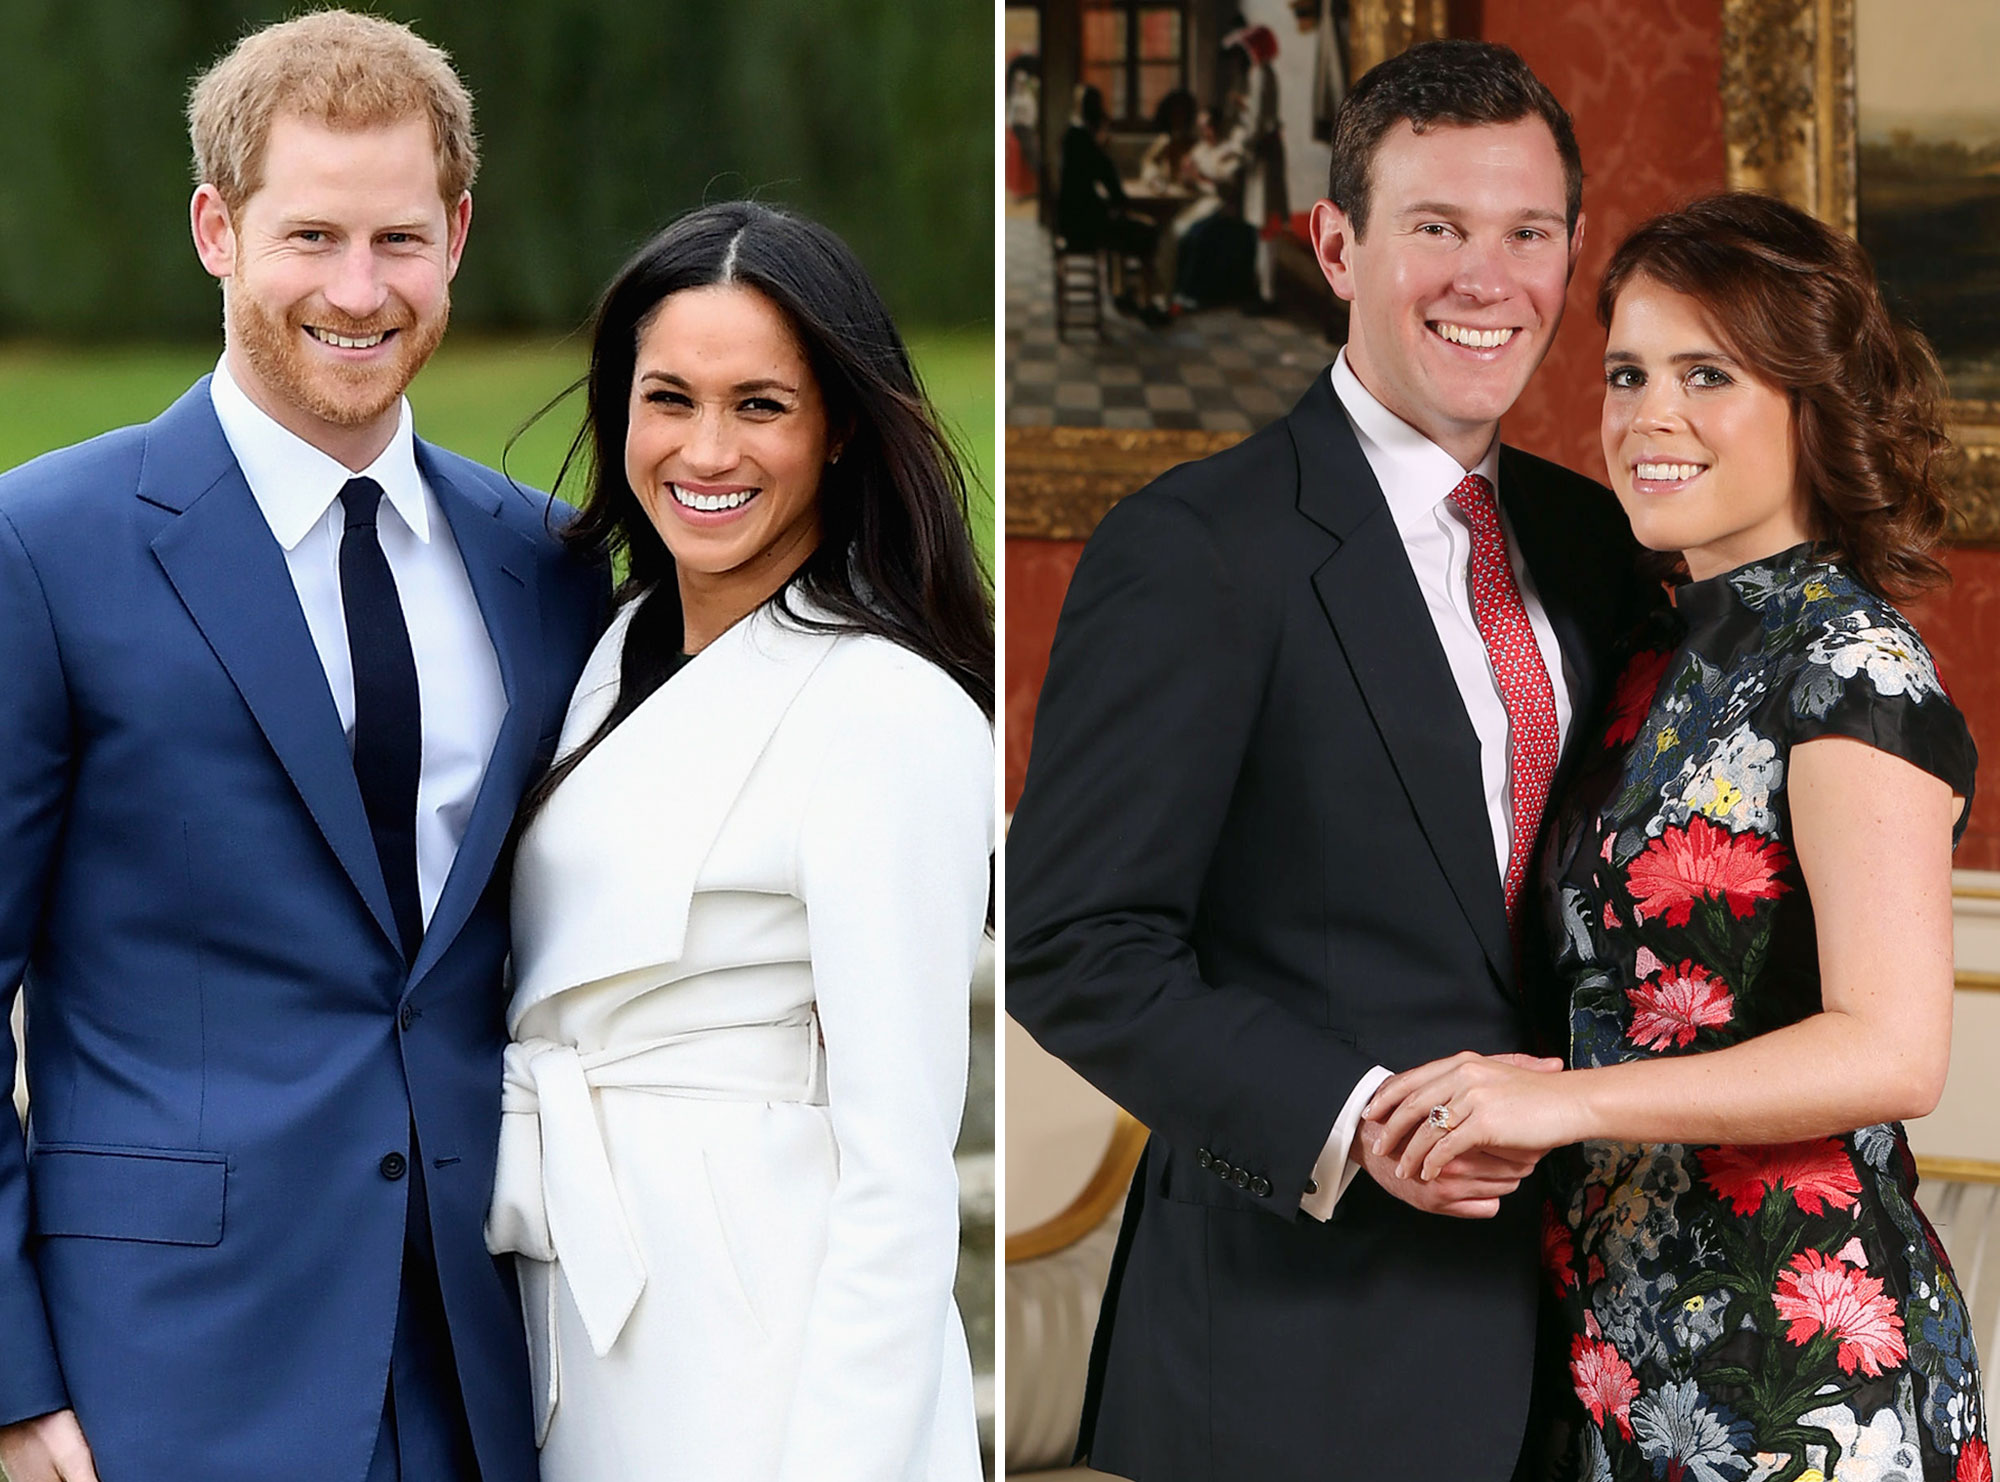 There Are 2 Royal Weddings This Year, but There's No Competition Between Them